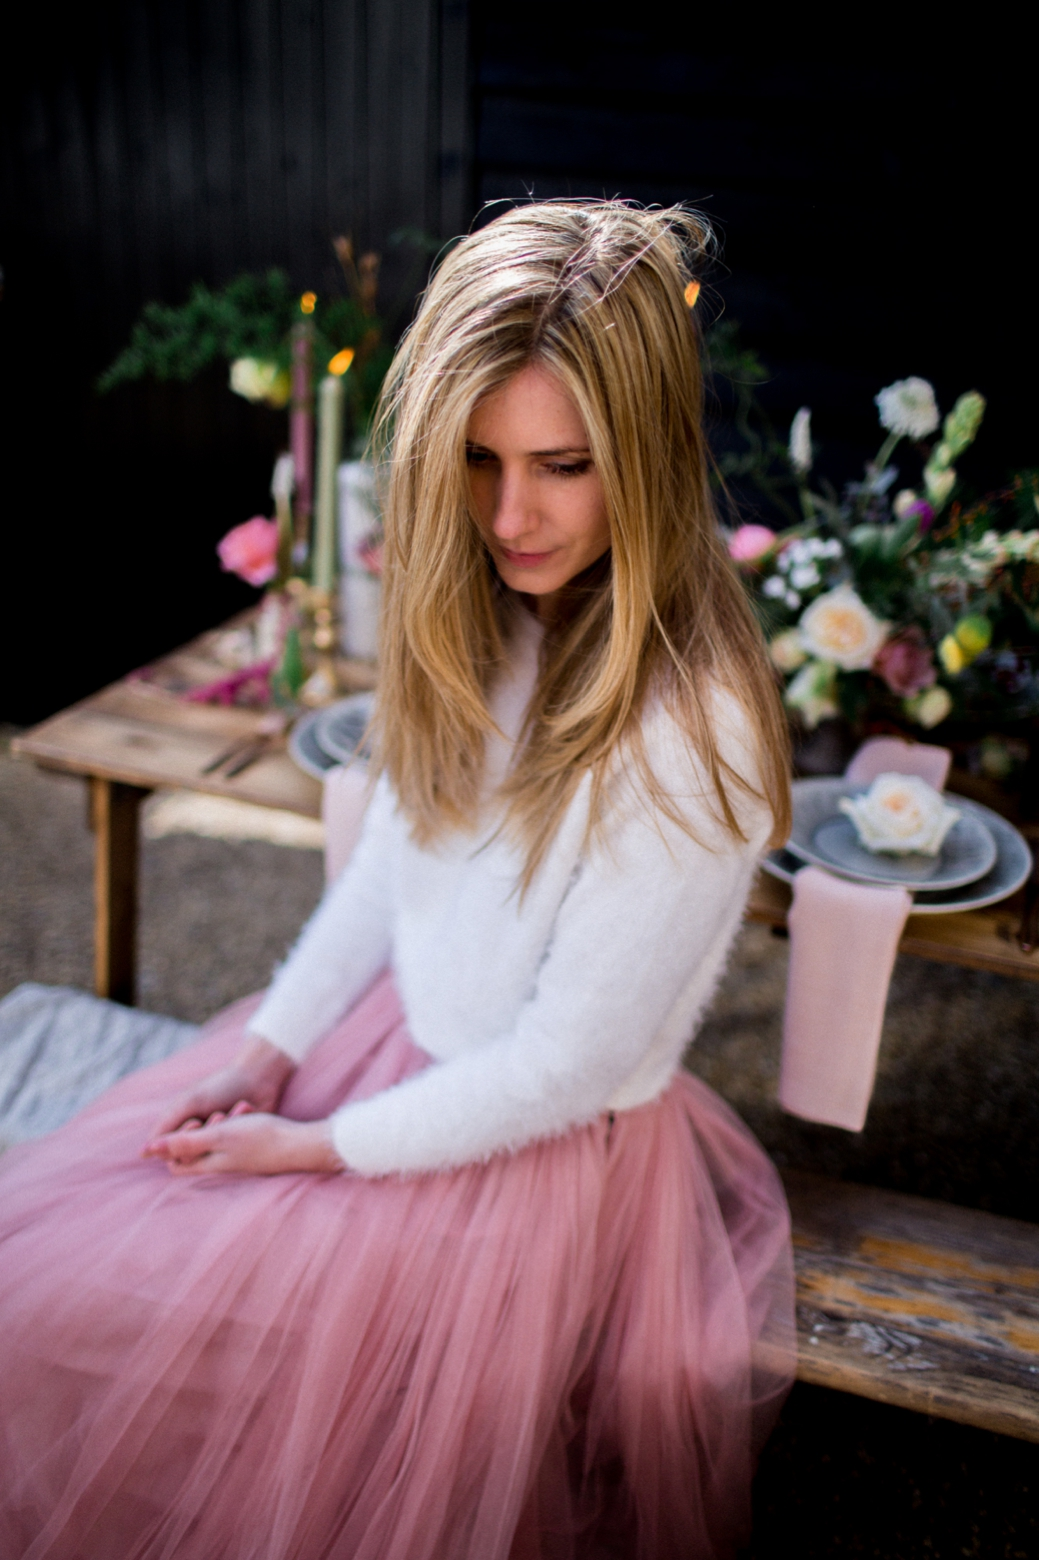 a comfy bridal look with a white fuzzy sweater and a pink tulle skirt for a casual and feminine feel